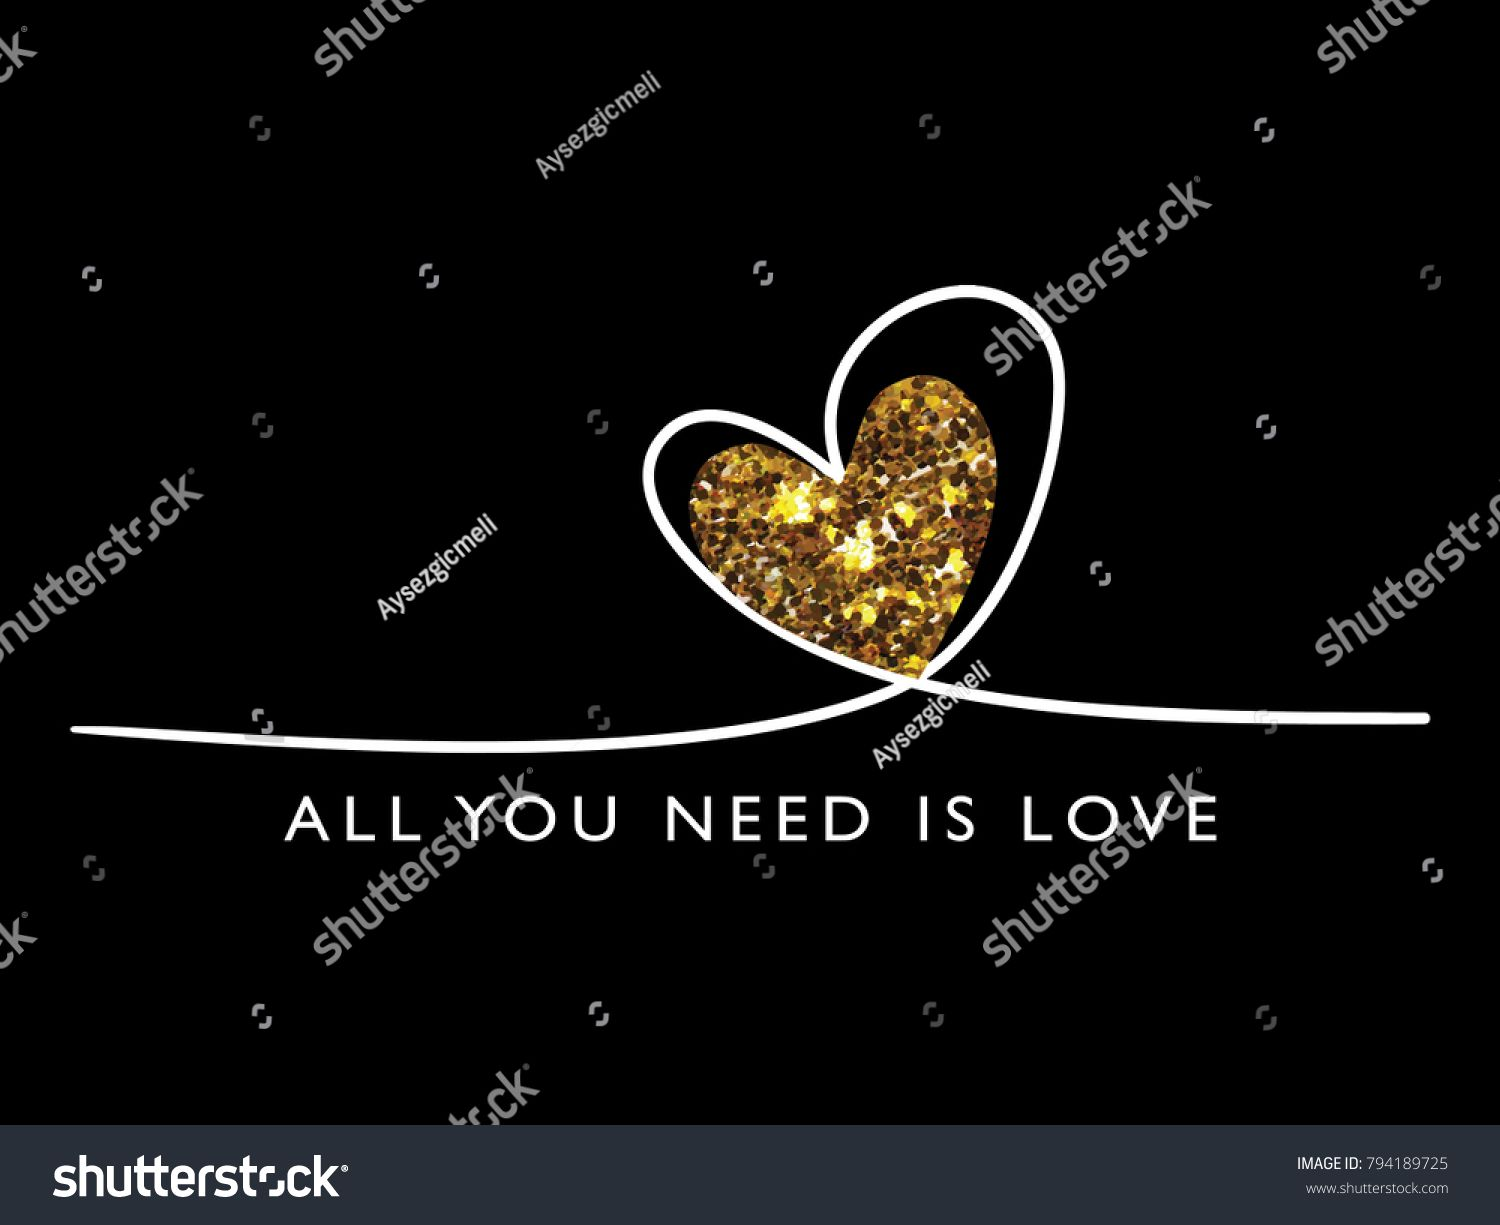 All You Need Is Love Quote With Gold Glitter Textured Heart